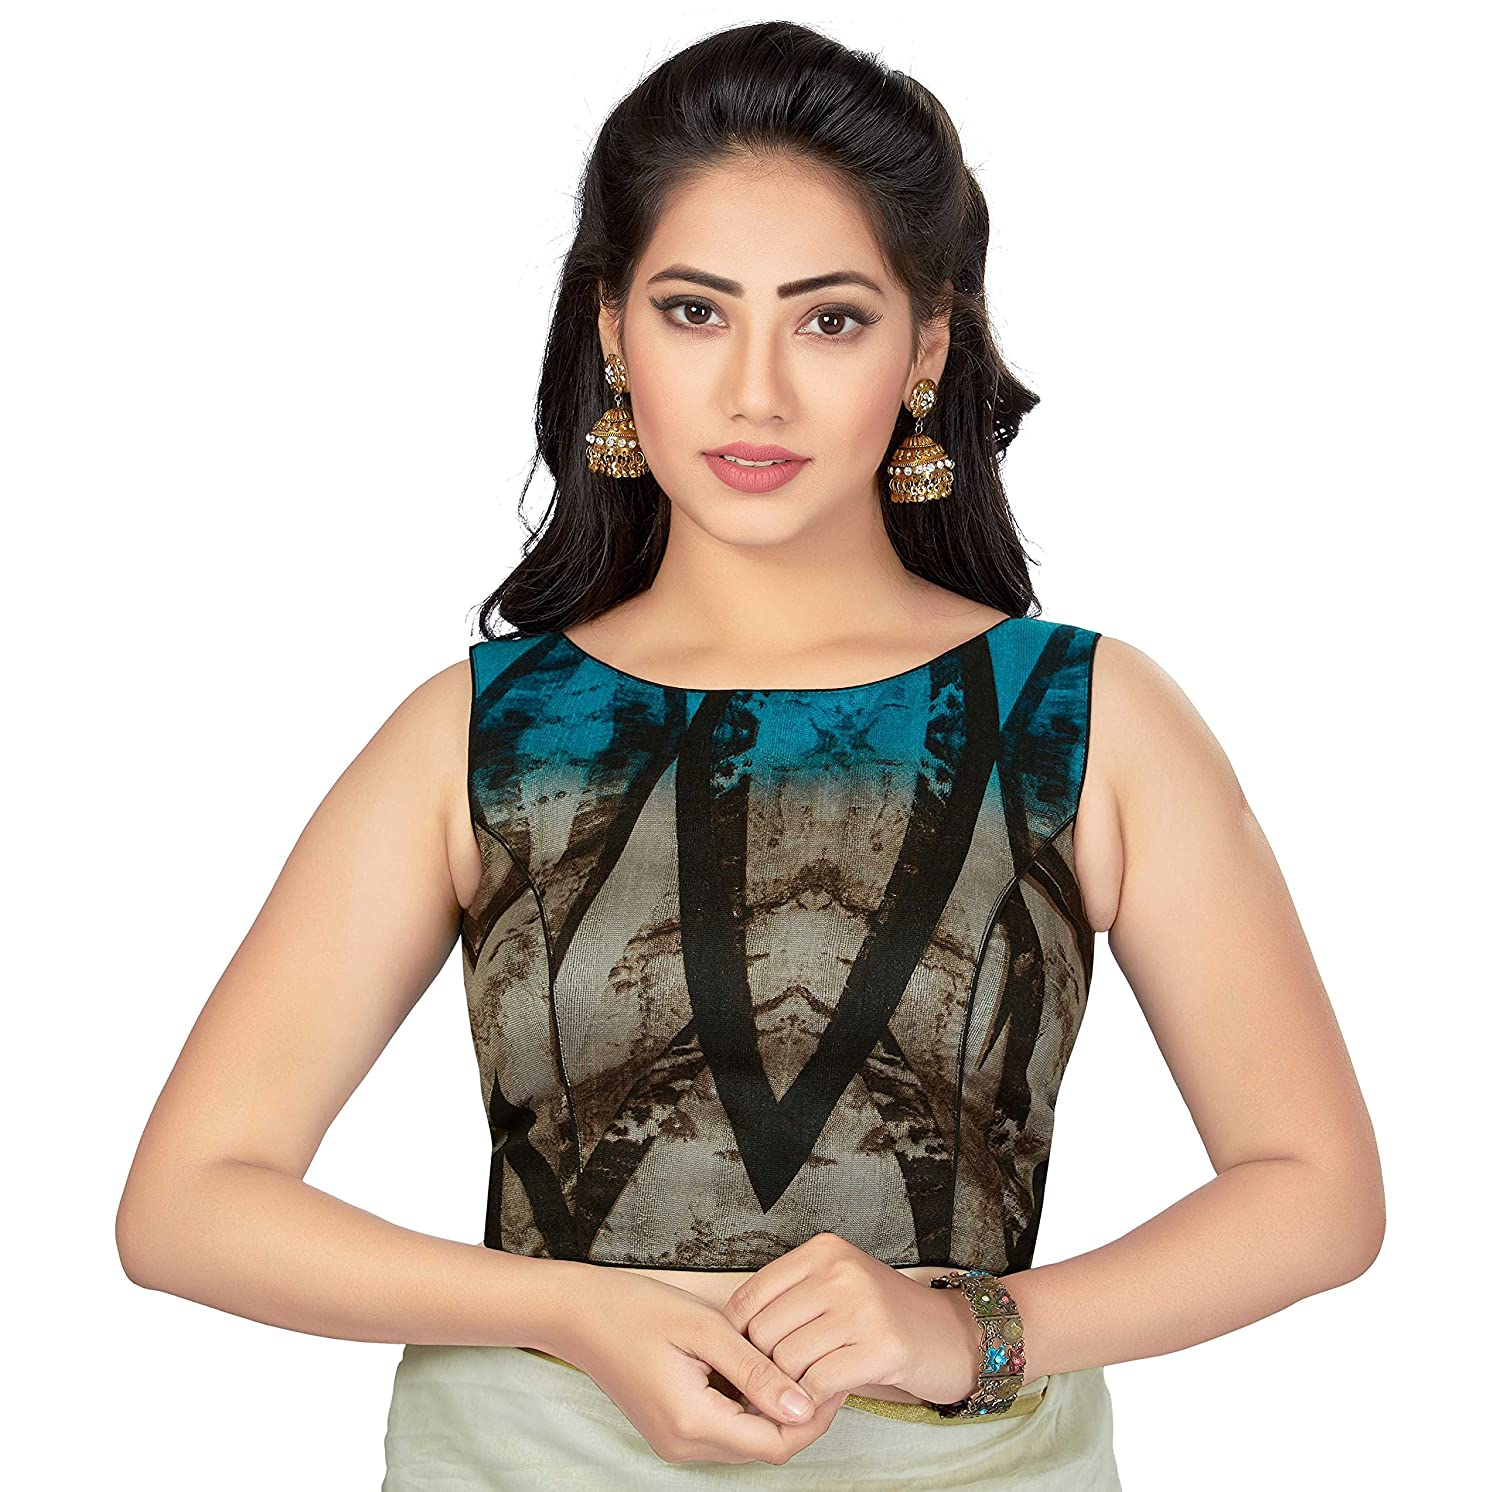 TrendyFashionMall Readymade Sleeveless Printed Cotton Saree Blouse Multi Color Collection